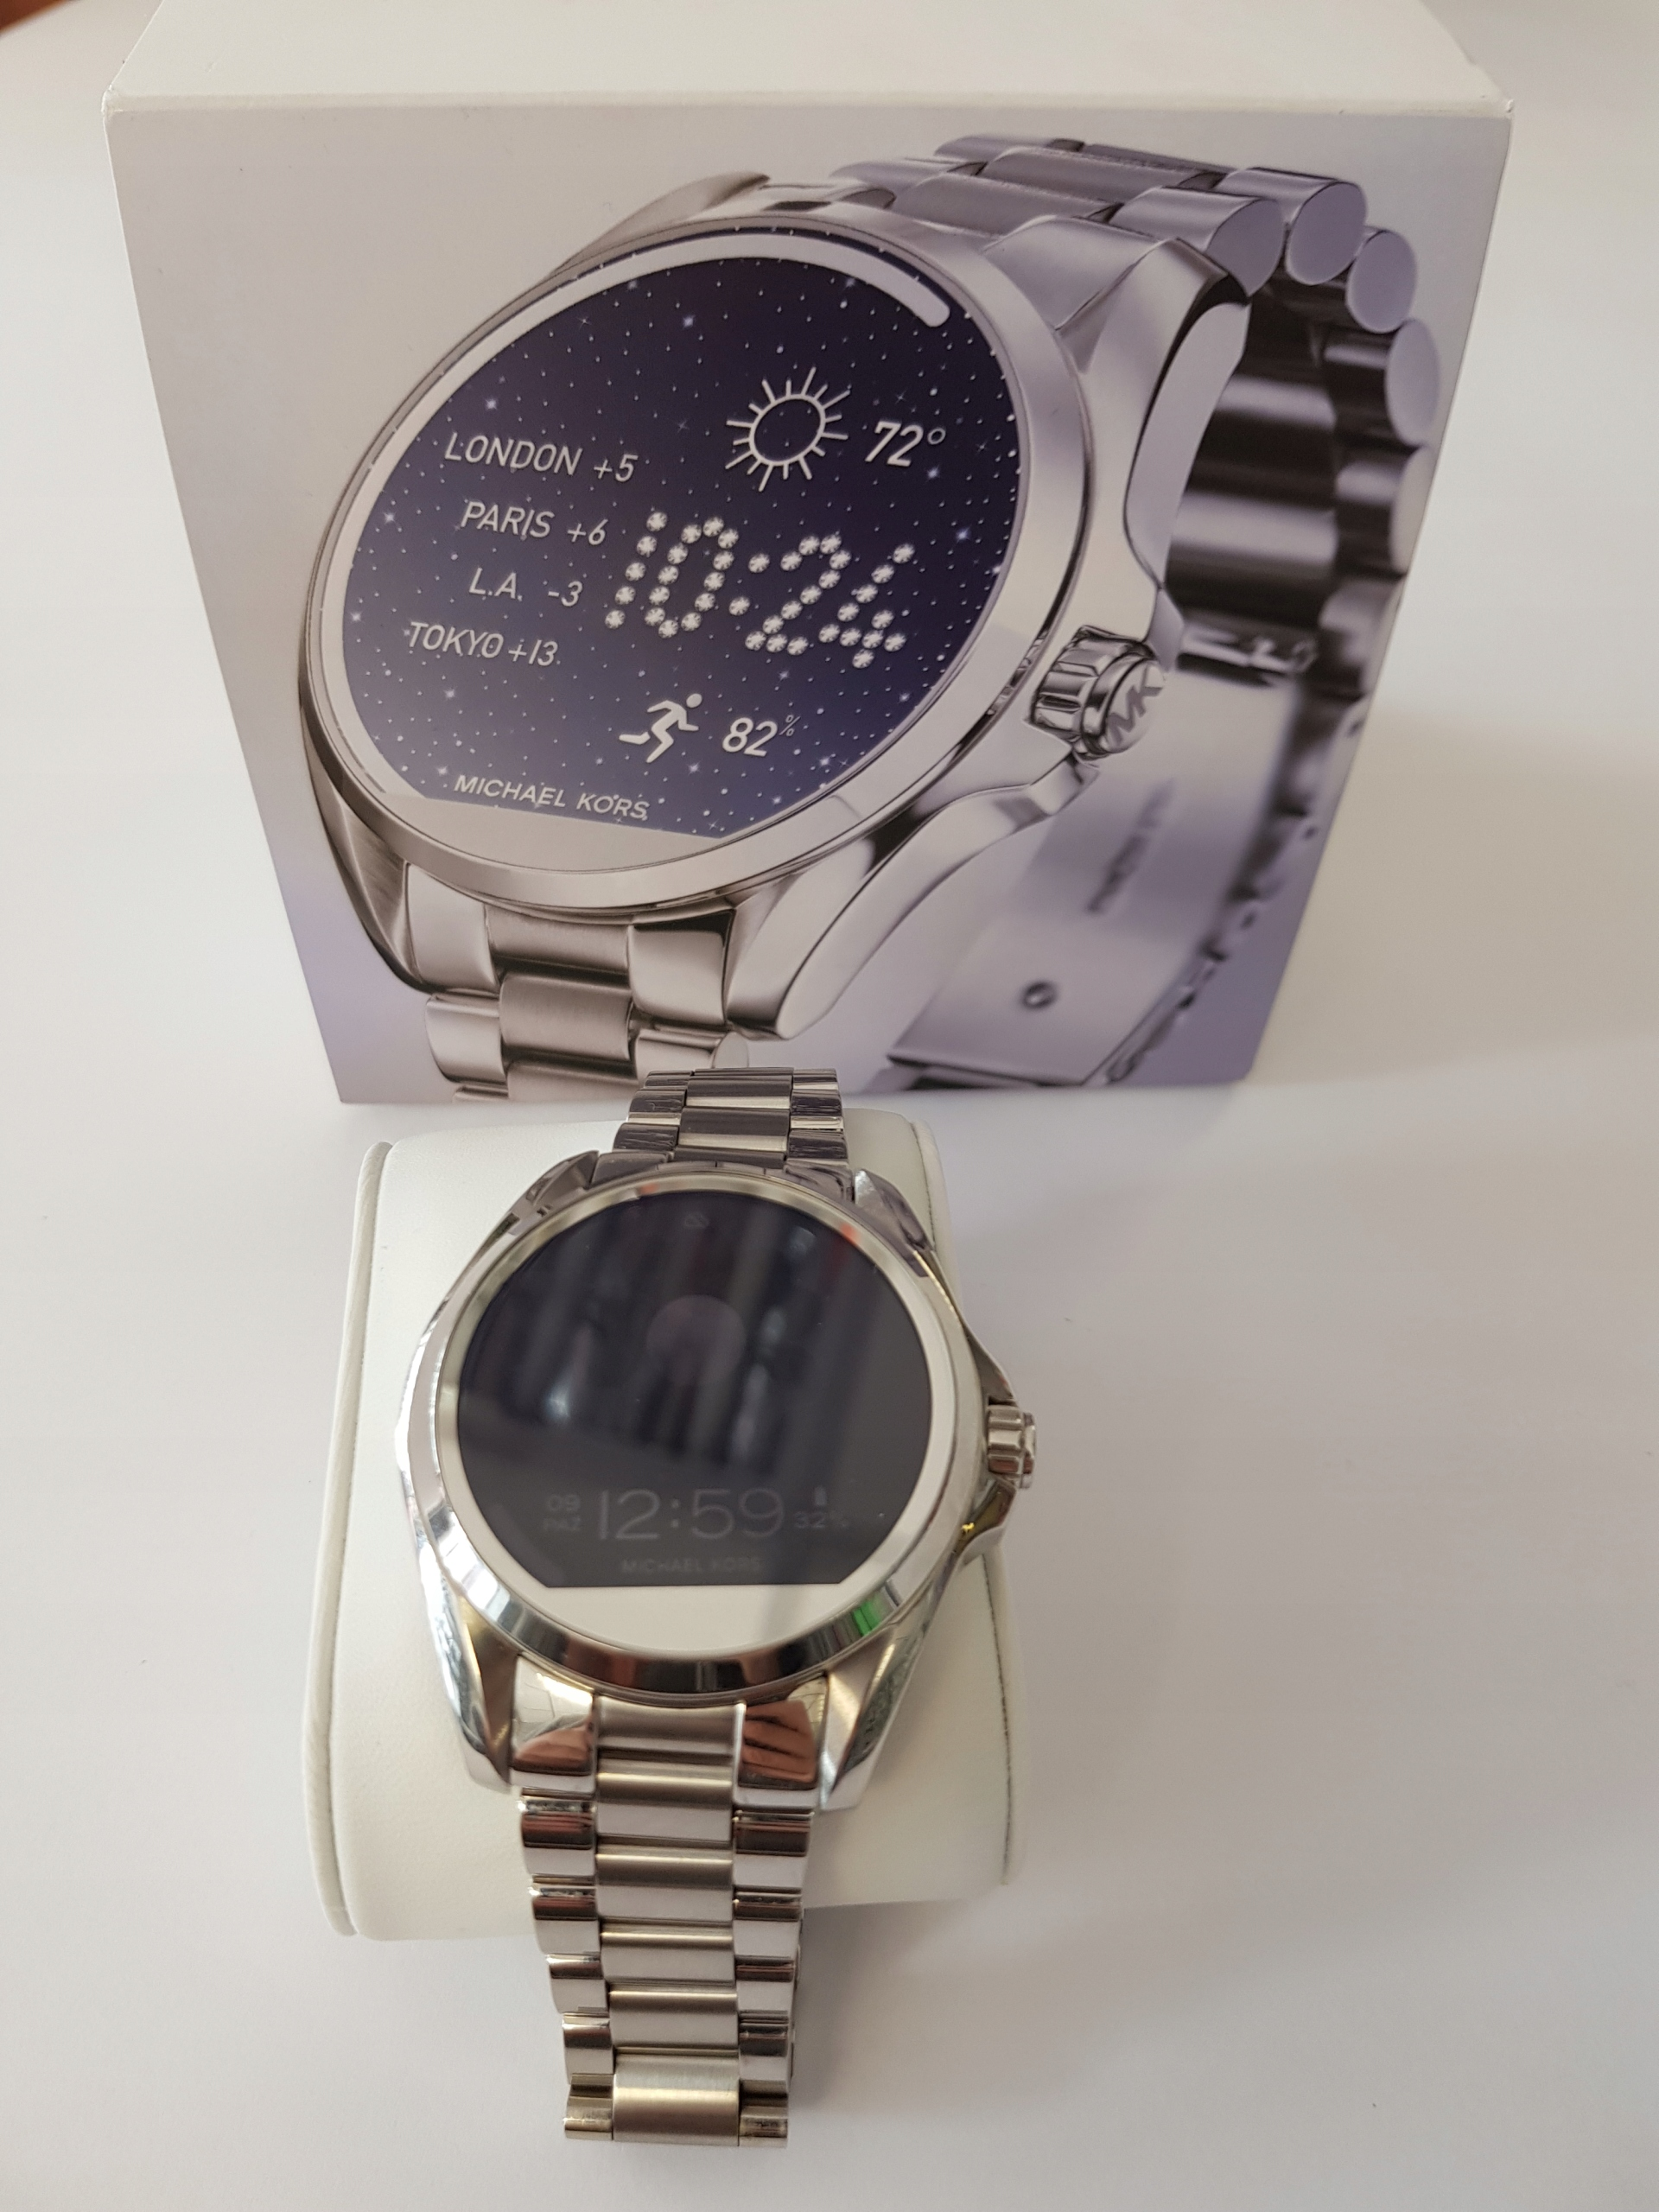 58370be73dd92 Zegarek Smartwatch Michael Kors smart 5001 - 7606727647 - oficjalne ...